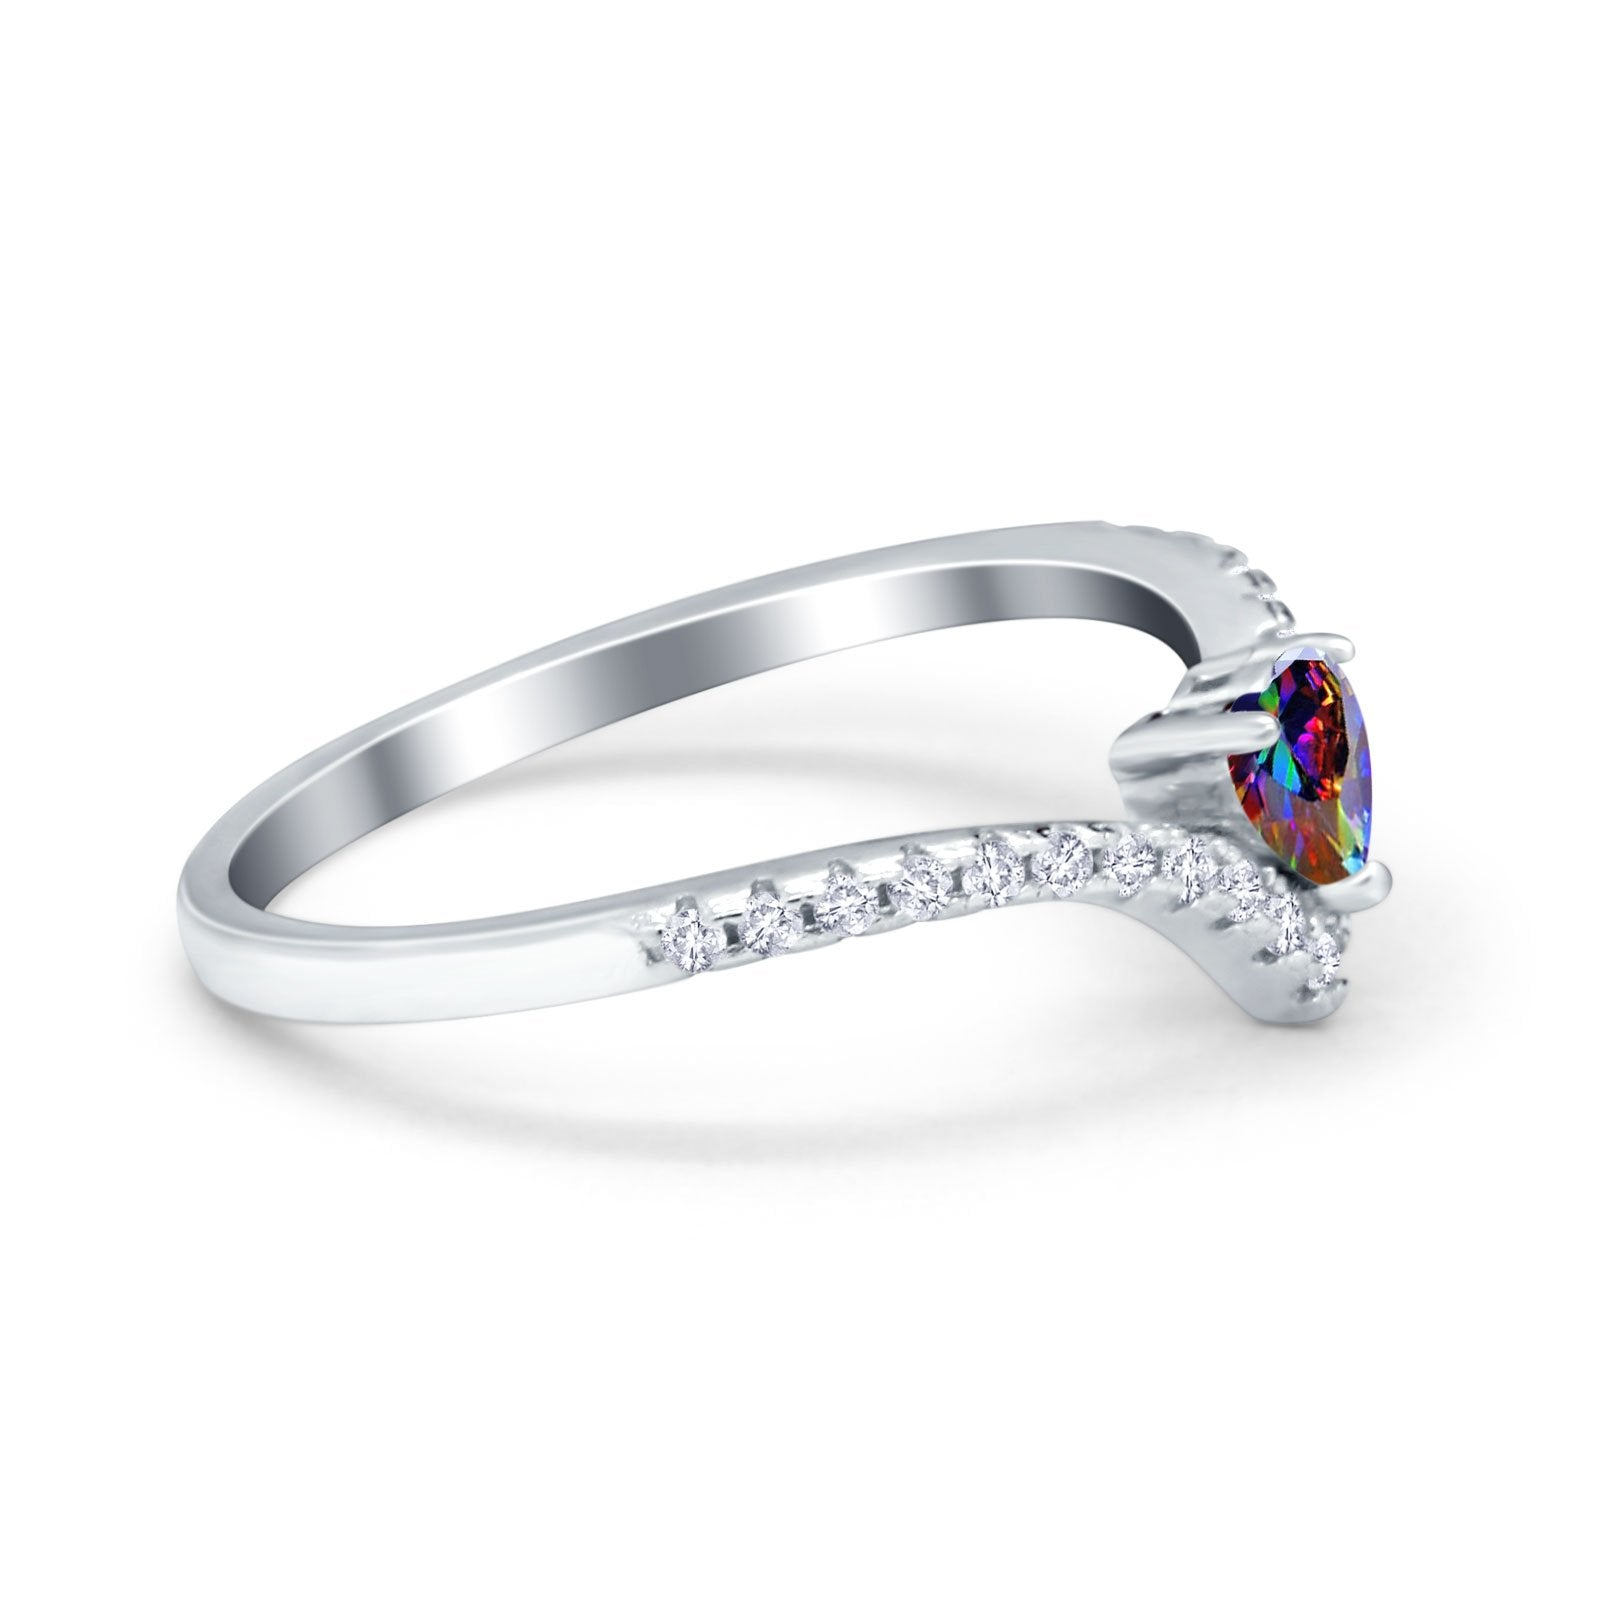 Chevron Midi V Ring Heart Simulated Stone Cubic Zirconia 925 Sterling Silver